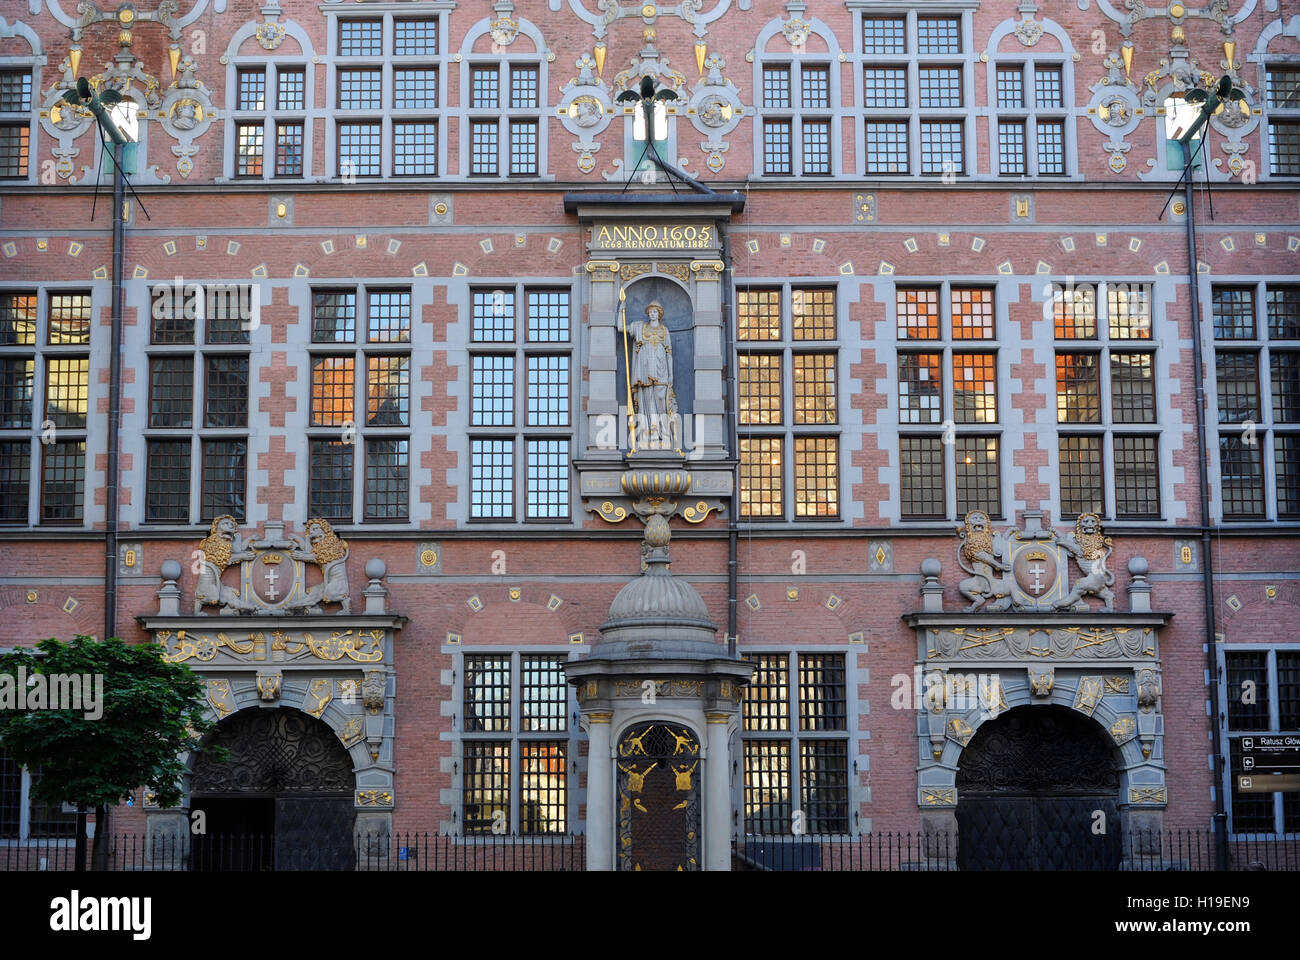 Poland. Gdansk. Great Arsenal. 17th century. Mannerist. Architect Anthony van Obbergen (1543-1611). - Stock Image